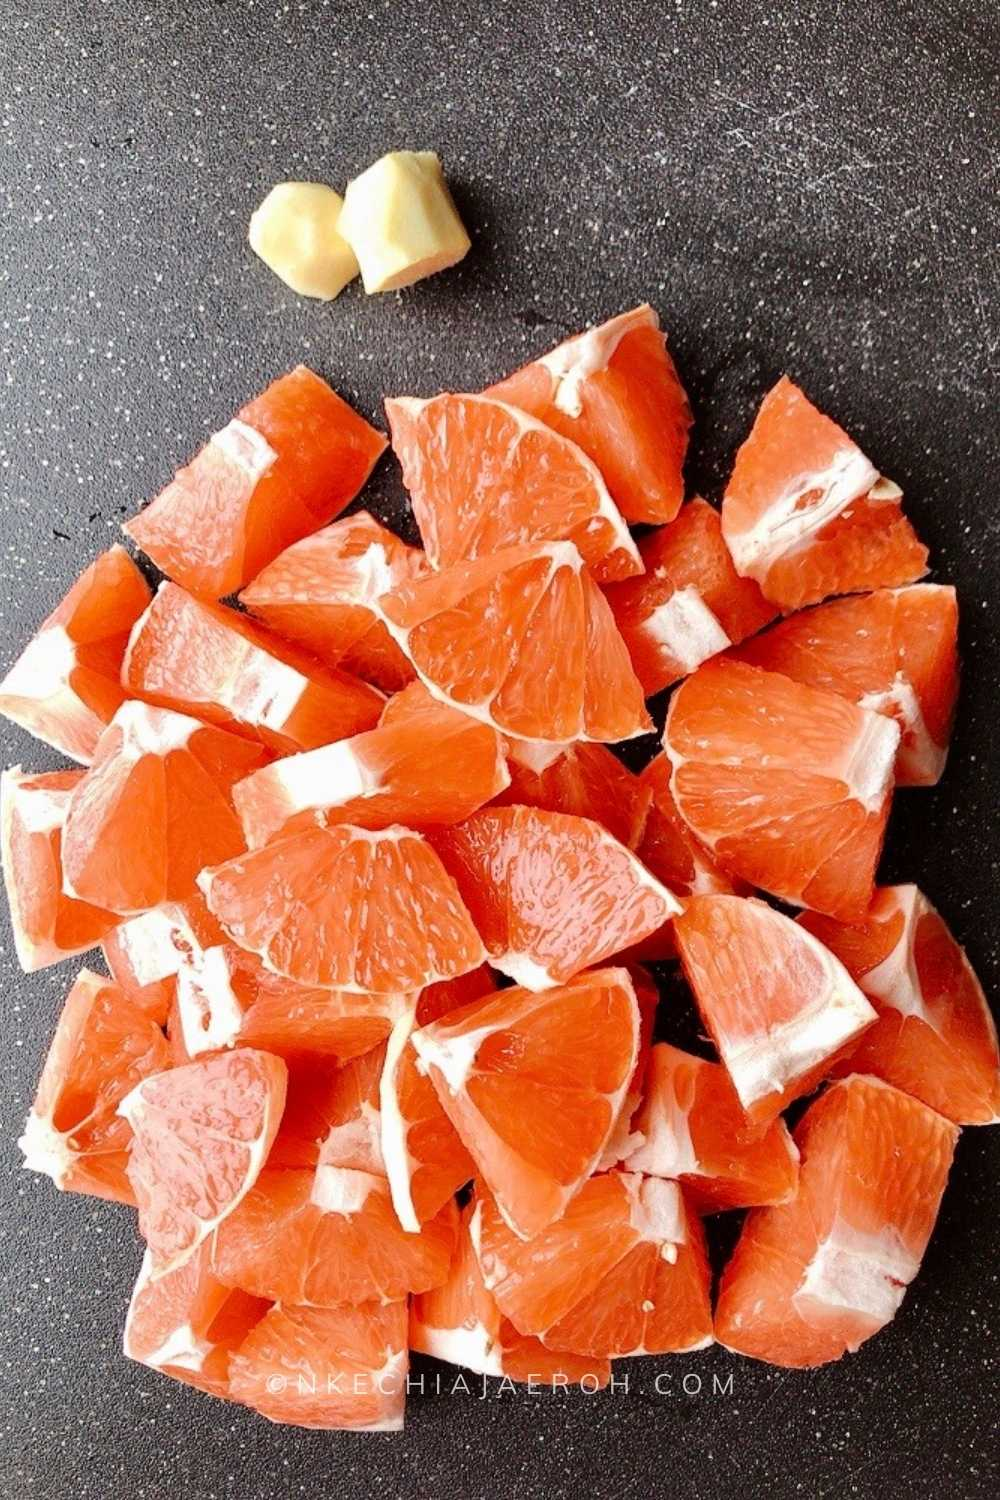 Cut the grapefruit accordingly or cut in half if using a citrus juicer